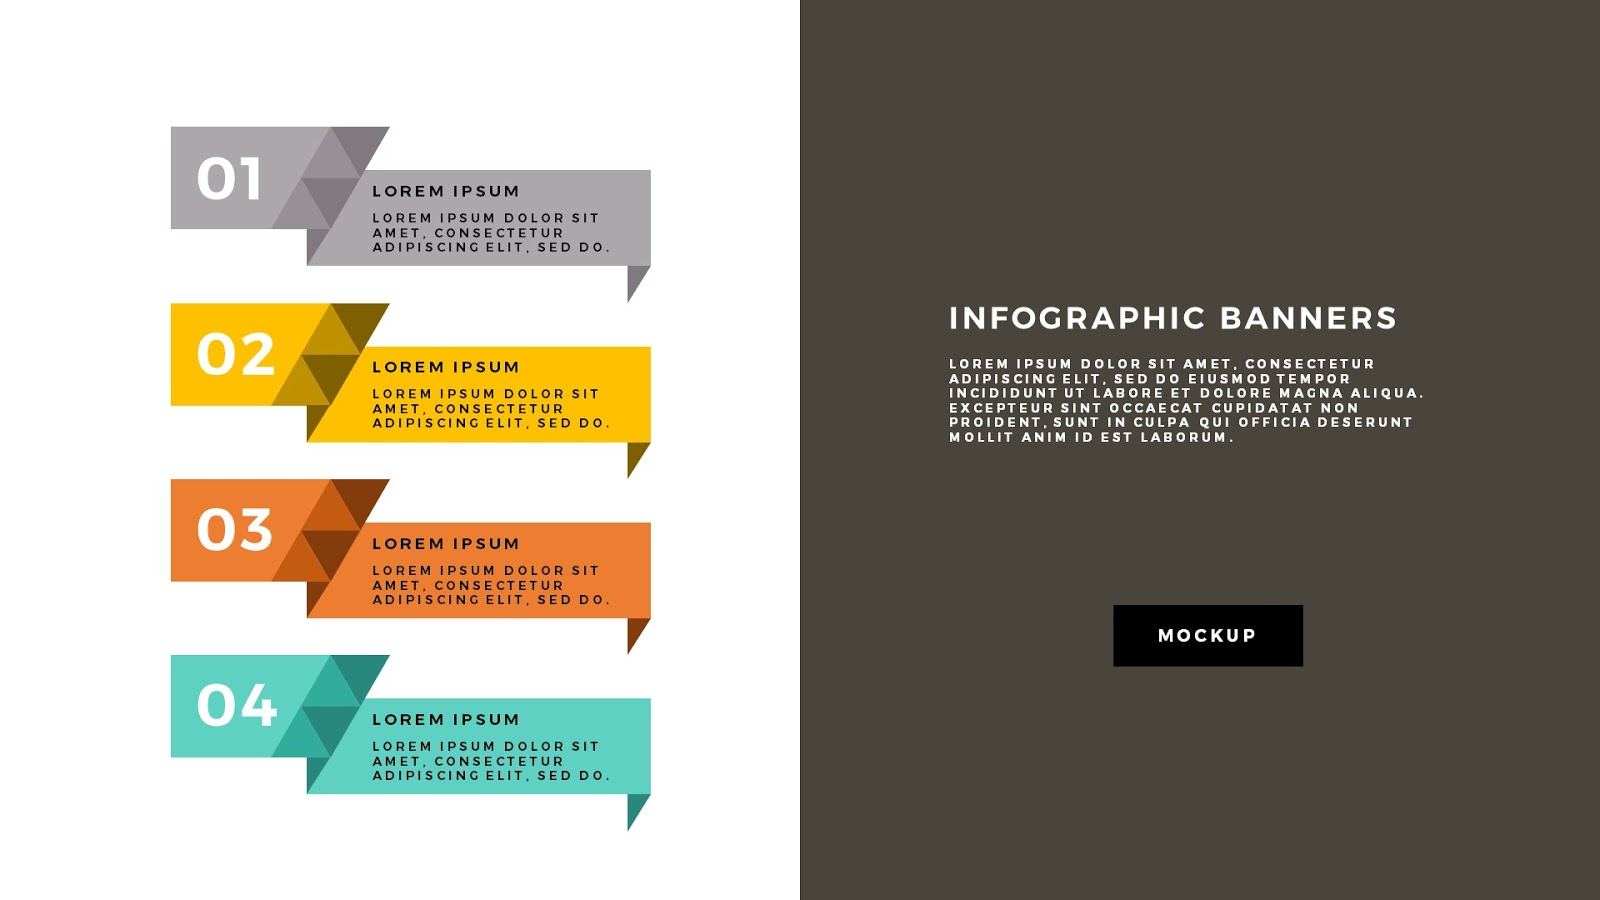 Powerpoint banner template gallery templates example free download infographic geometric banners free powerpoint template free infographic geometric banners powerpoint template slide 5 alramifo gallery toneelgroepblik Image collections